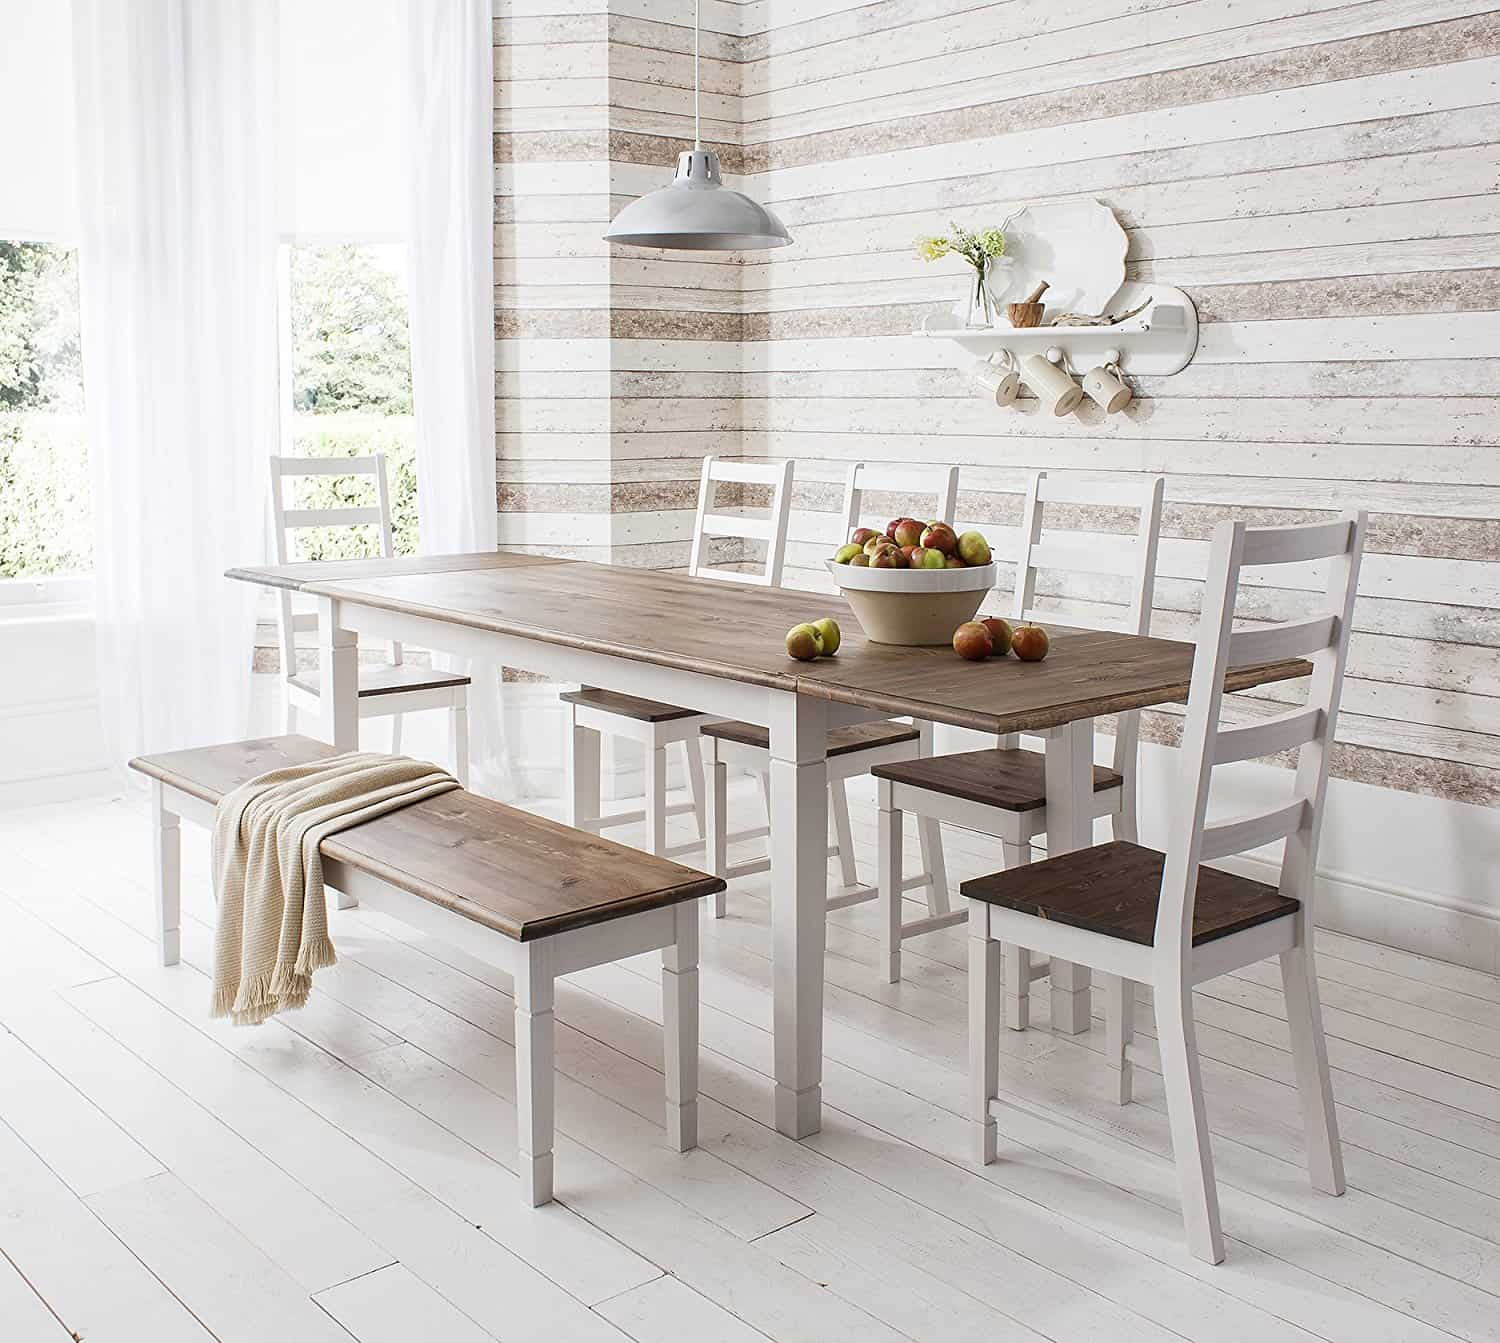 Fine Quirky Rustic Dining Table Decorating Trends Short Links Chair Design For Home Short Linksinfo